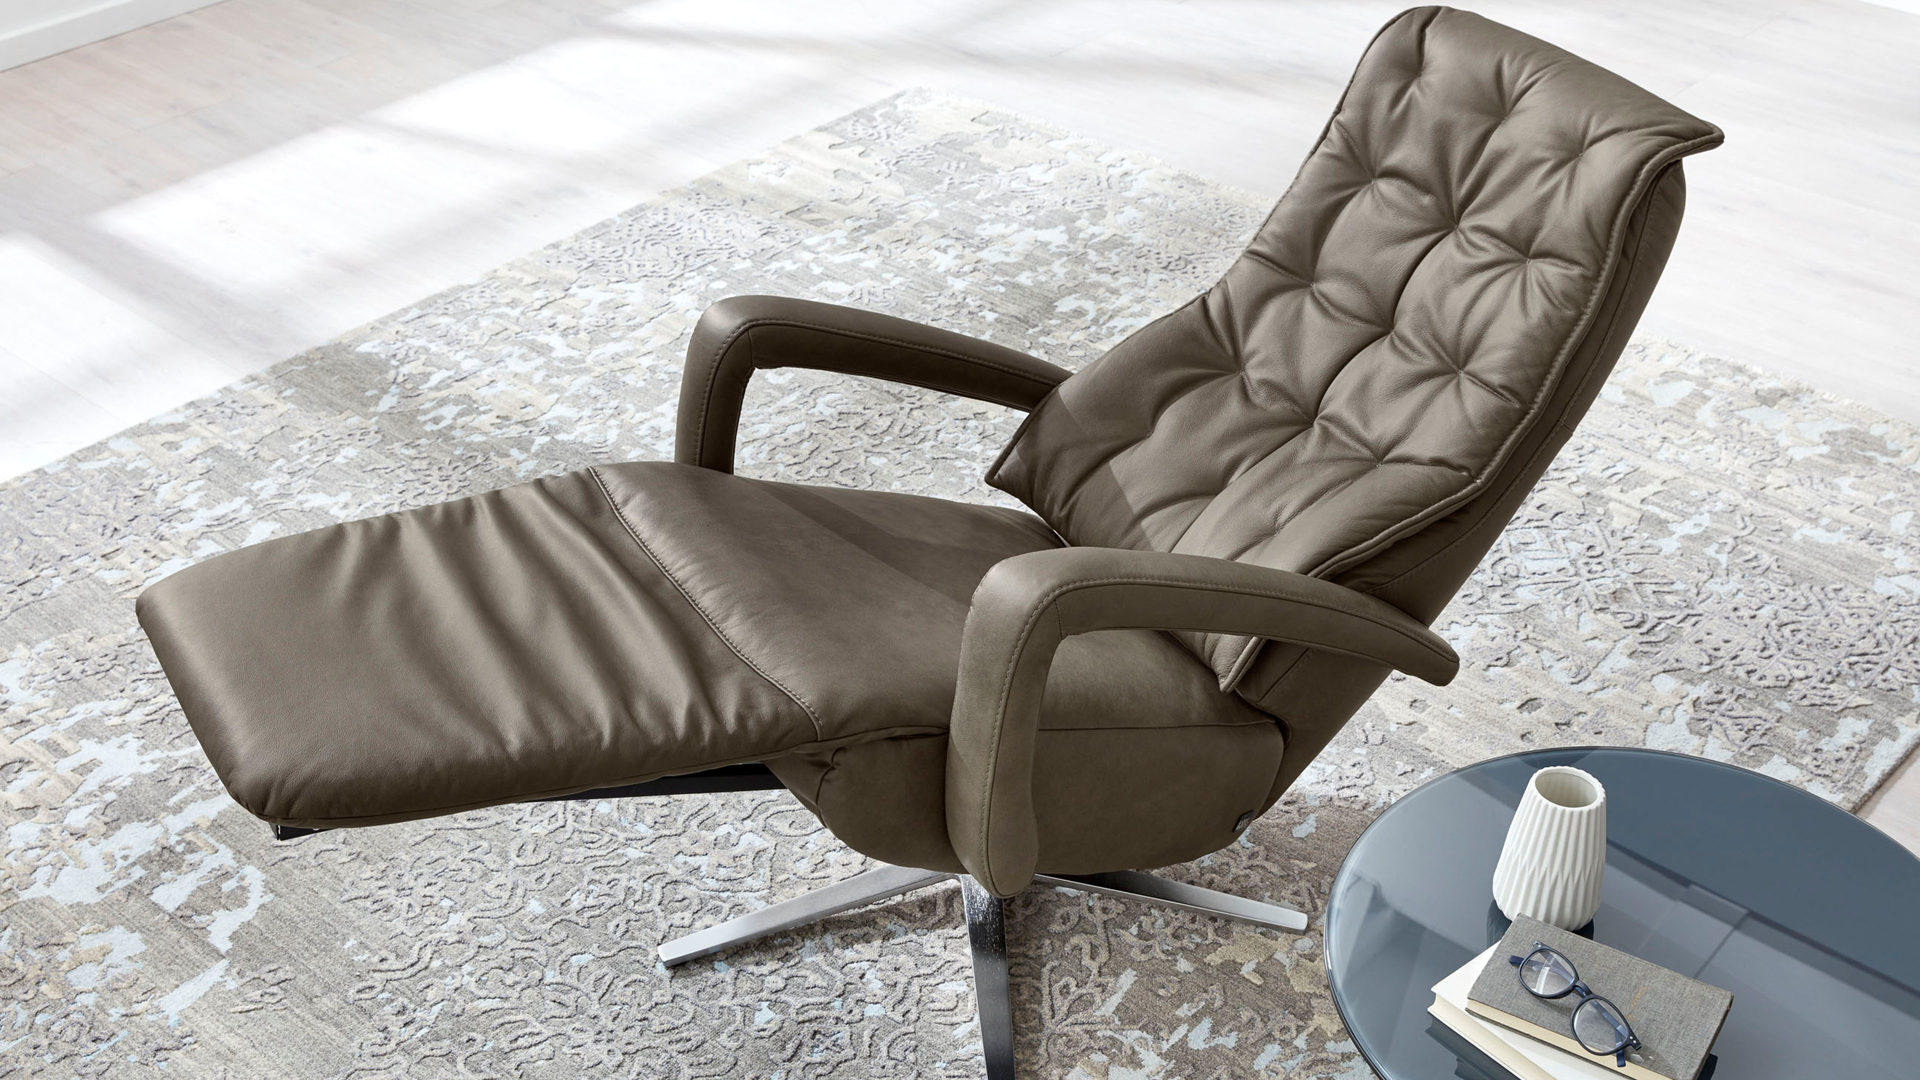 Relaxsessel Hukla | il aus Leder in Grau Interliving Sessel Serie 4502 – Relaxsessel rauchgraues LongLife-Leder Cloudy smoke & Edelstahl-Sternfuß